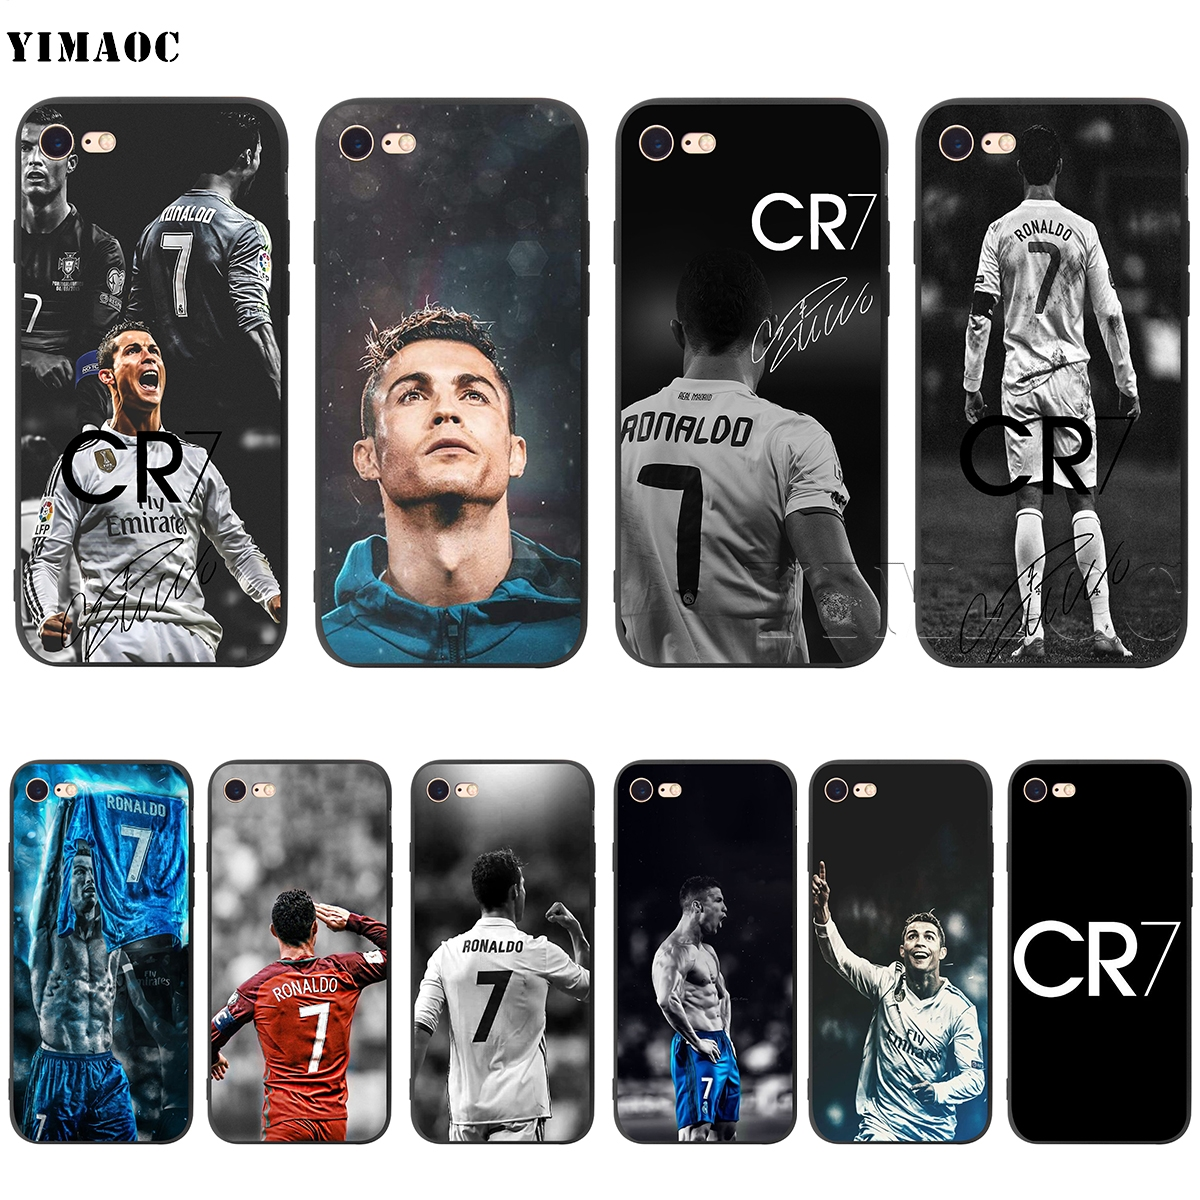 wholesale dealer 4f5bd 65ab0 US $2.5 24% OFF|YIMAOC CR7 Cristiano Ronaldo Silicone Soft Case for iPhone  XS Max XR X 8 7 6 6S Plus 5 5S SE-in Fitted Cases from Cellphones & ...